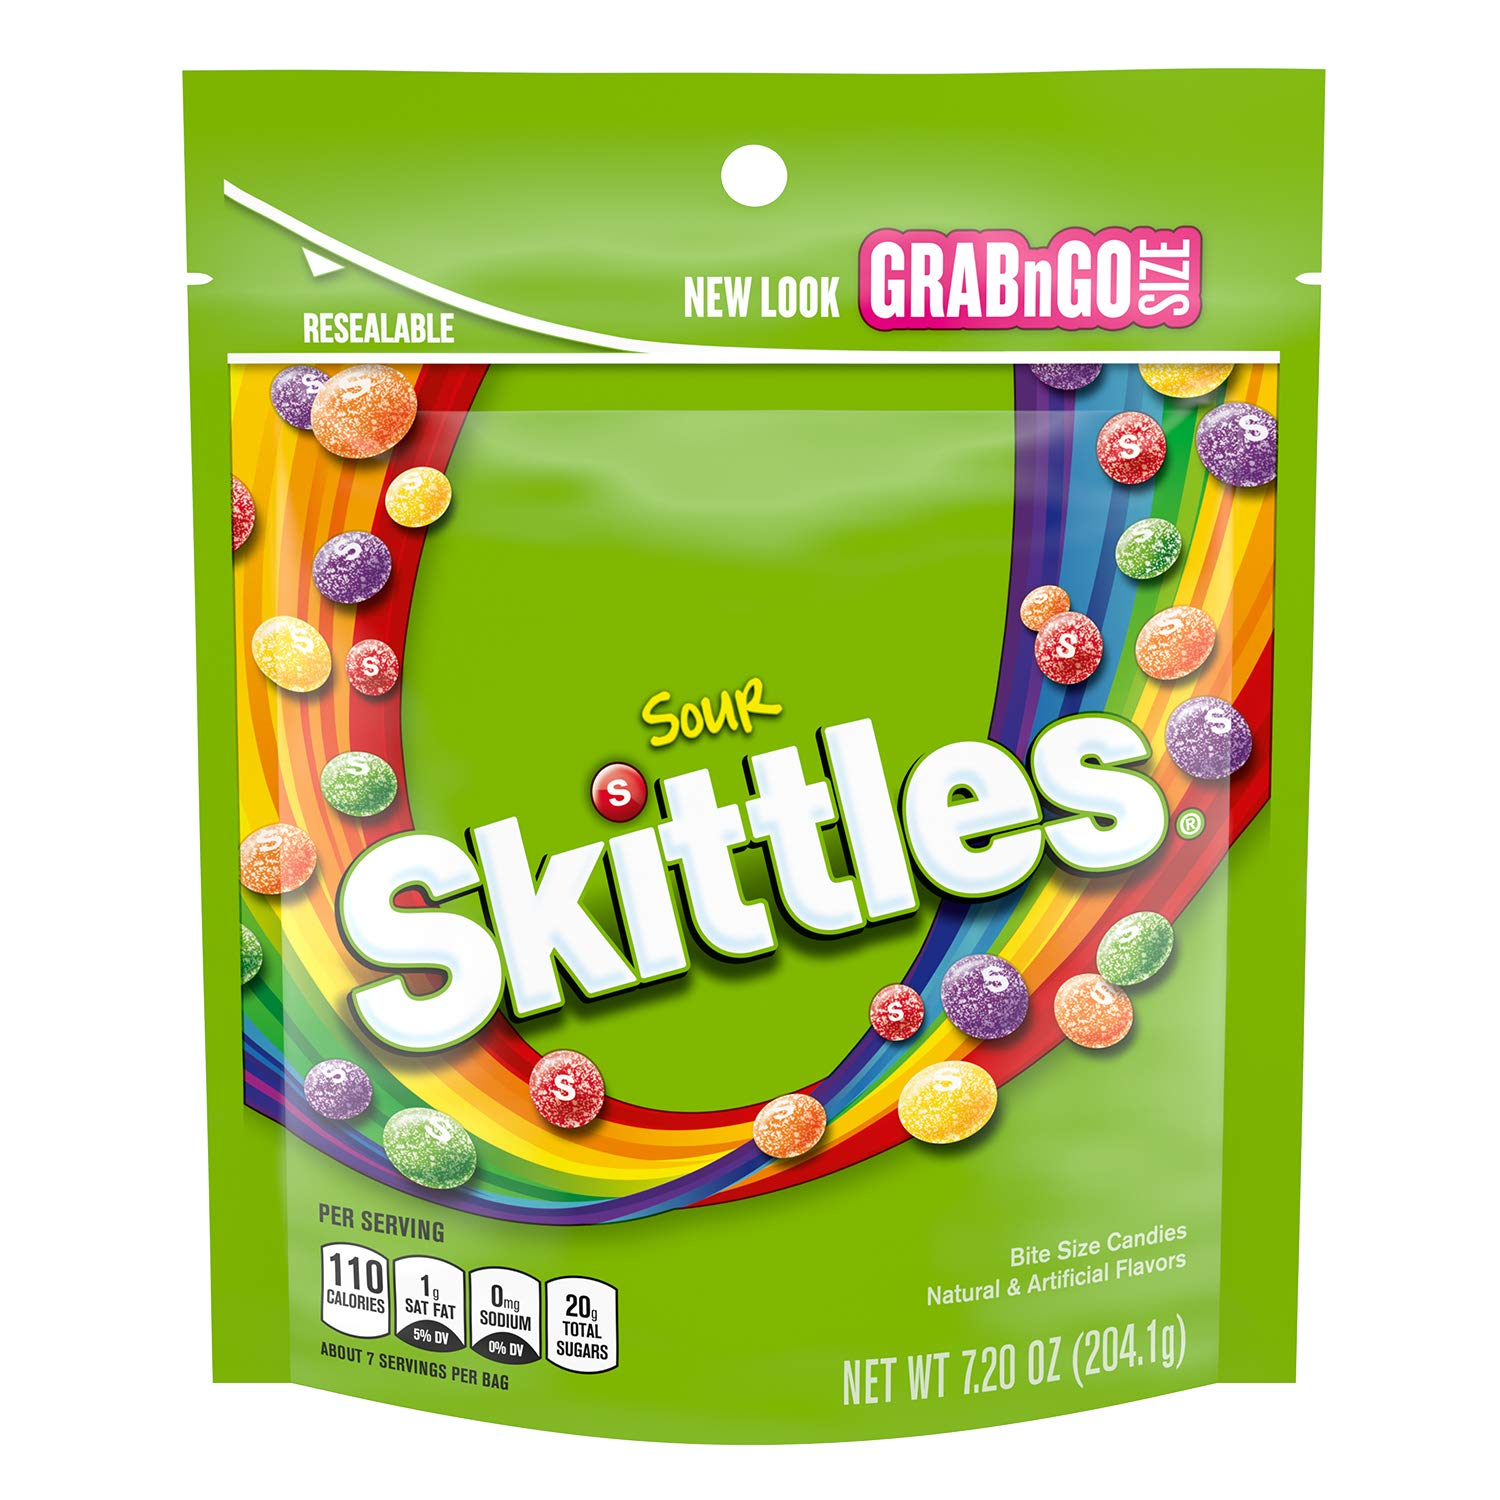 Skittles Sour Candy Bag, 7.2 ounce (8 Bags) by Skittles